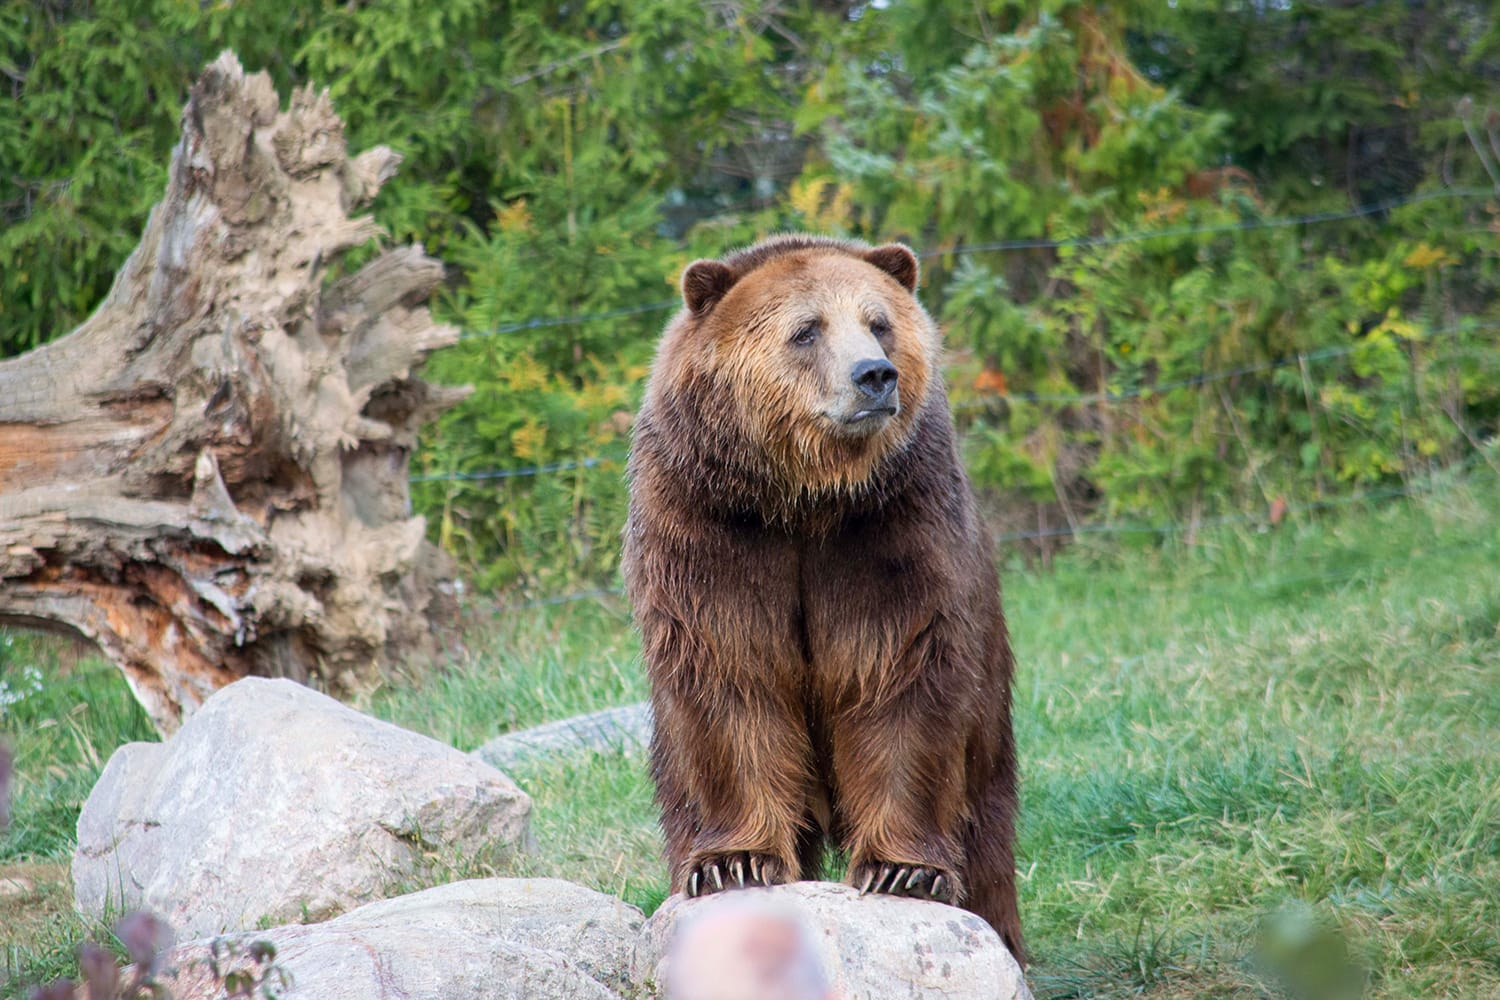 Grizzly Bear at zoo in the US